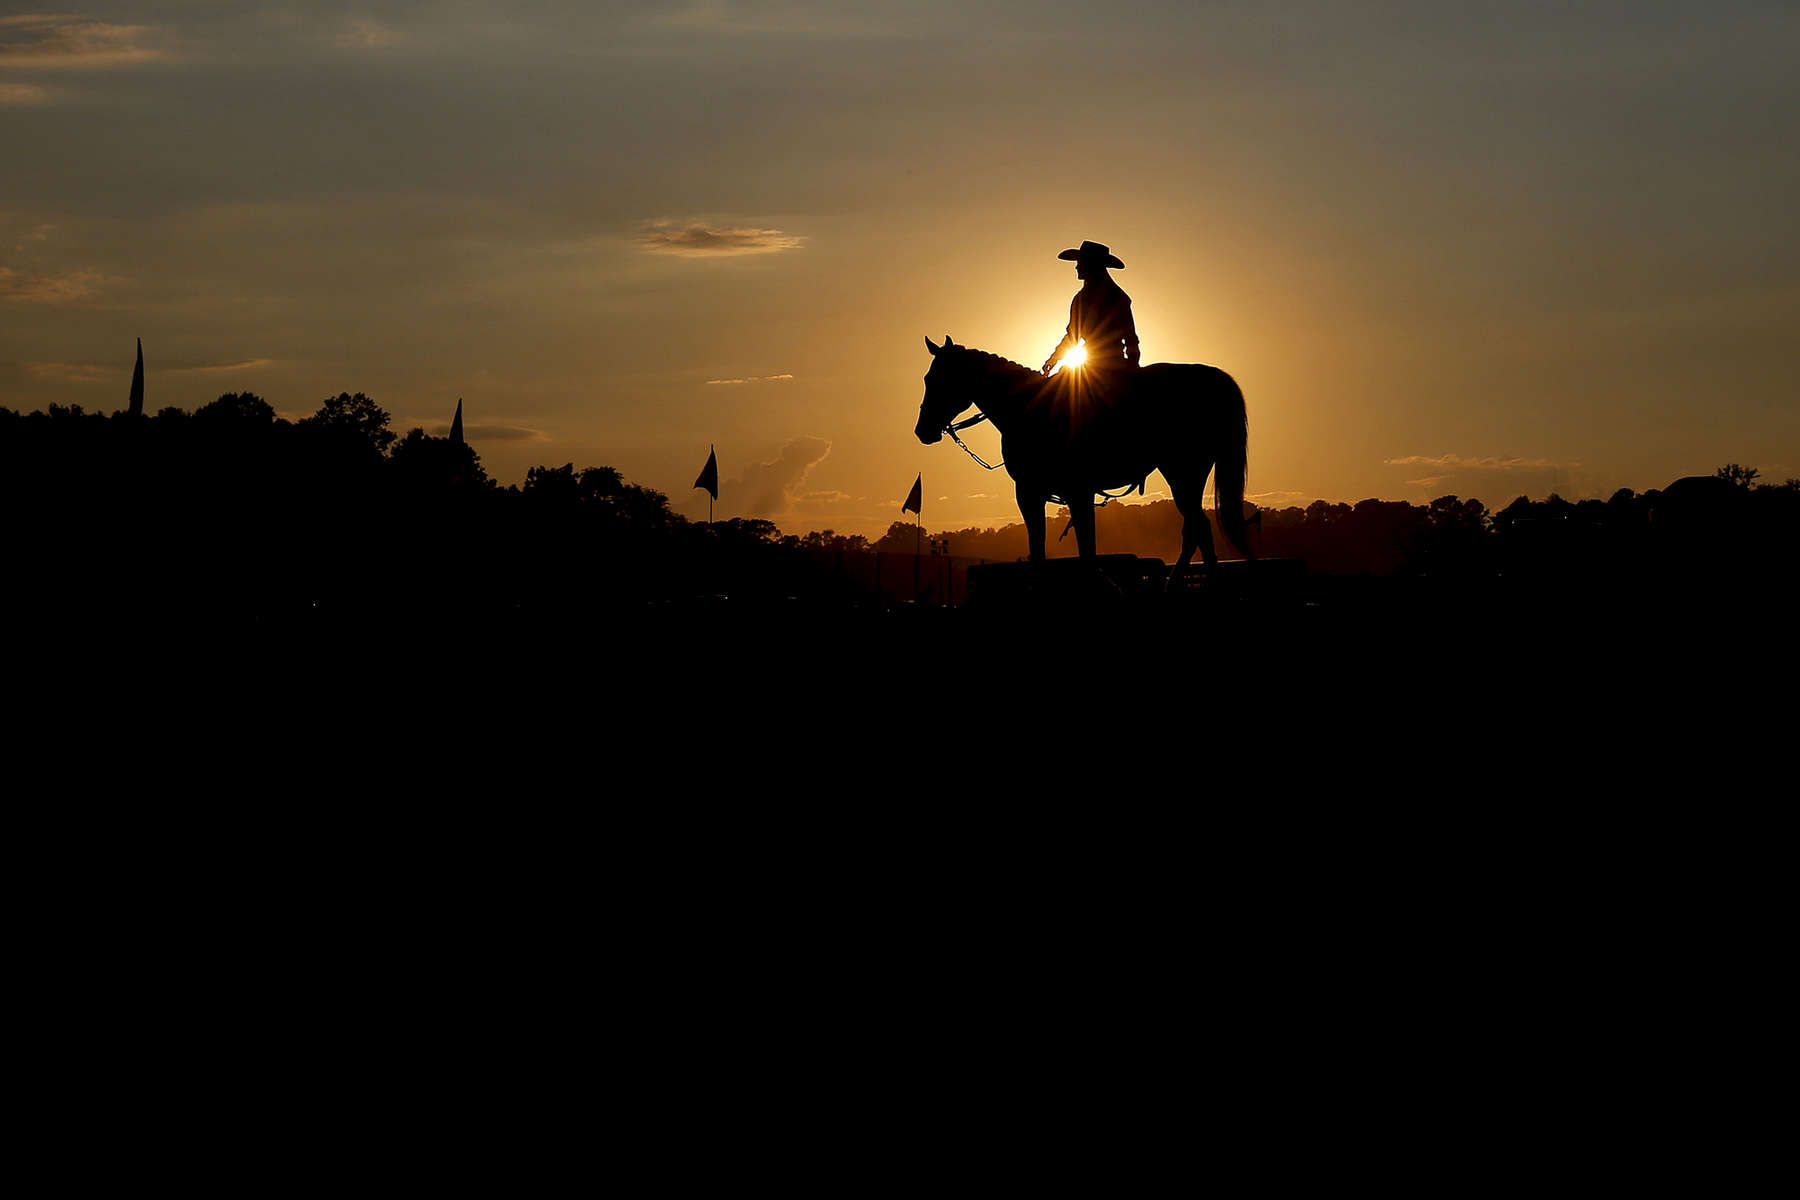 A woman waits on her horse after competing in the barrel racing competition during the Championship Rodeo presented by True Grit Rodeo Company at the Isle of Wight County Fair Saturday evening September 16, 2017.